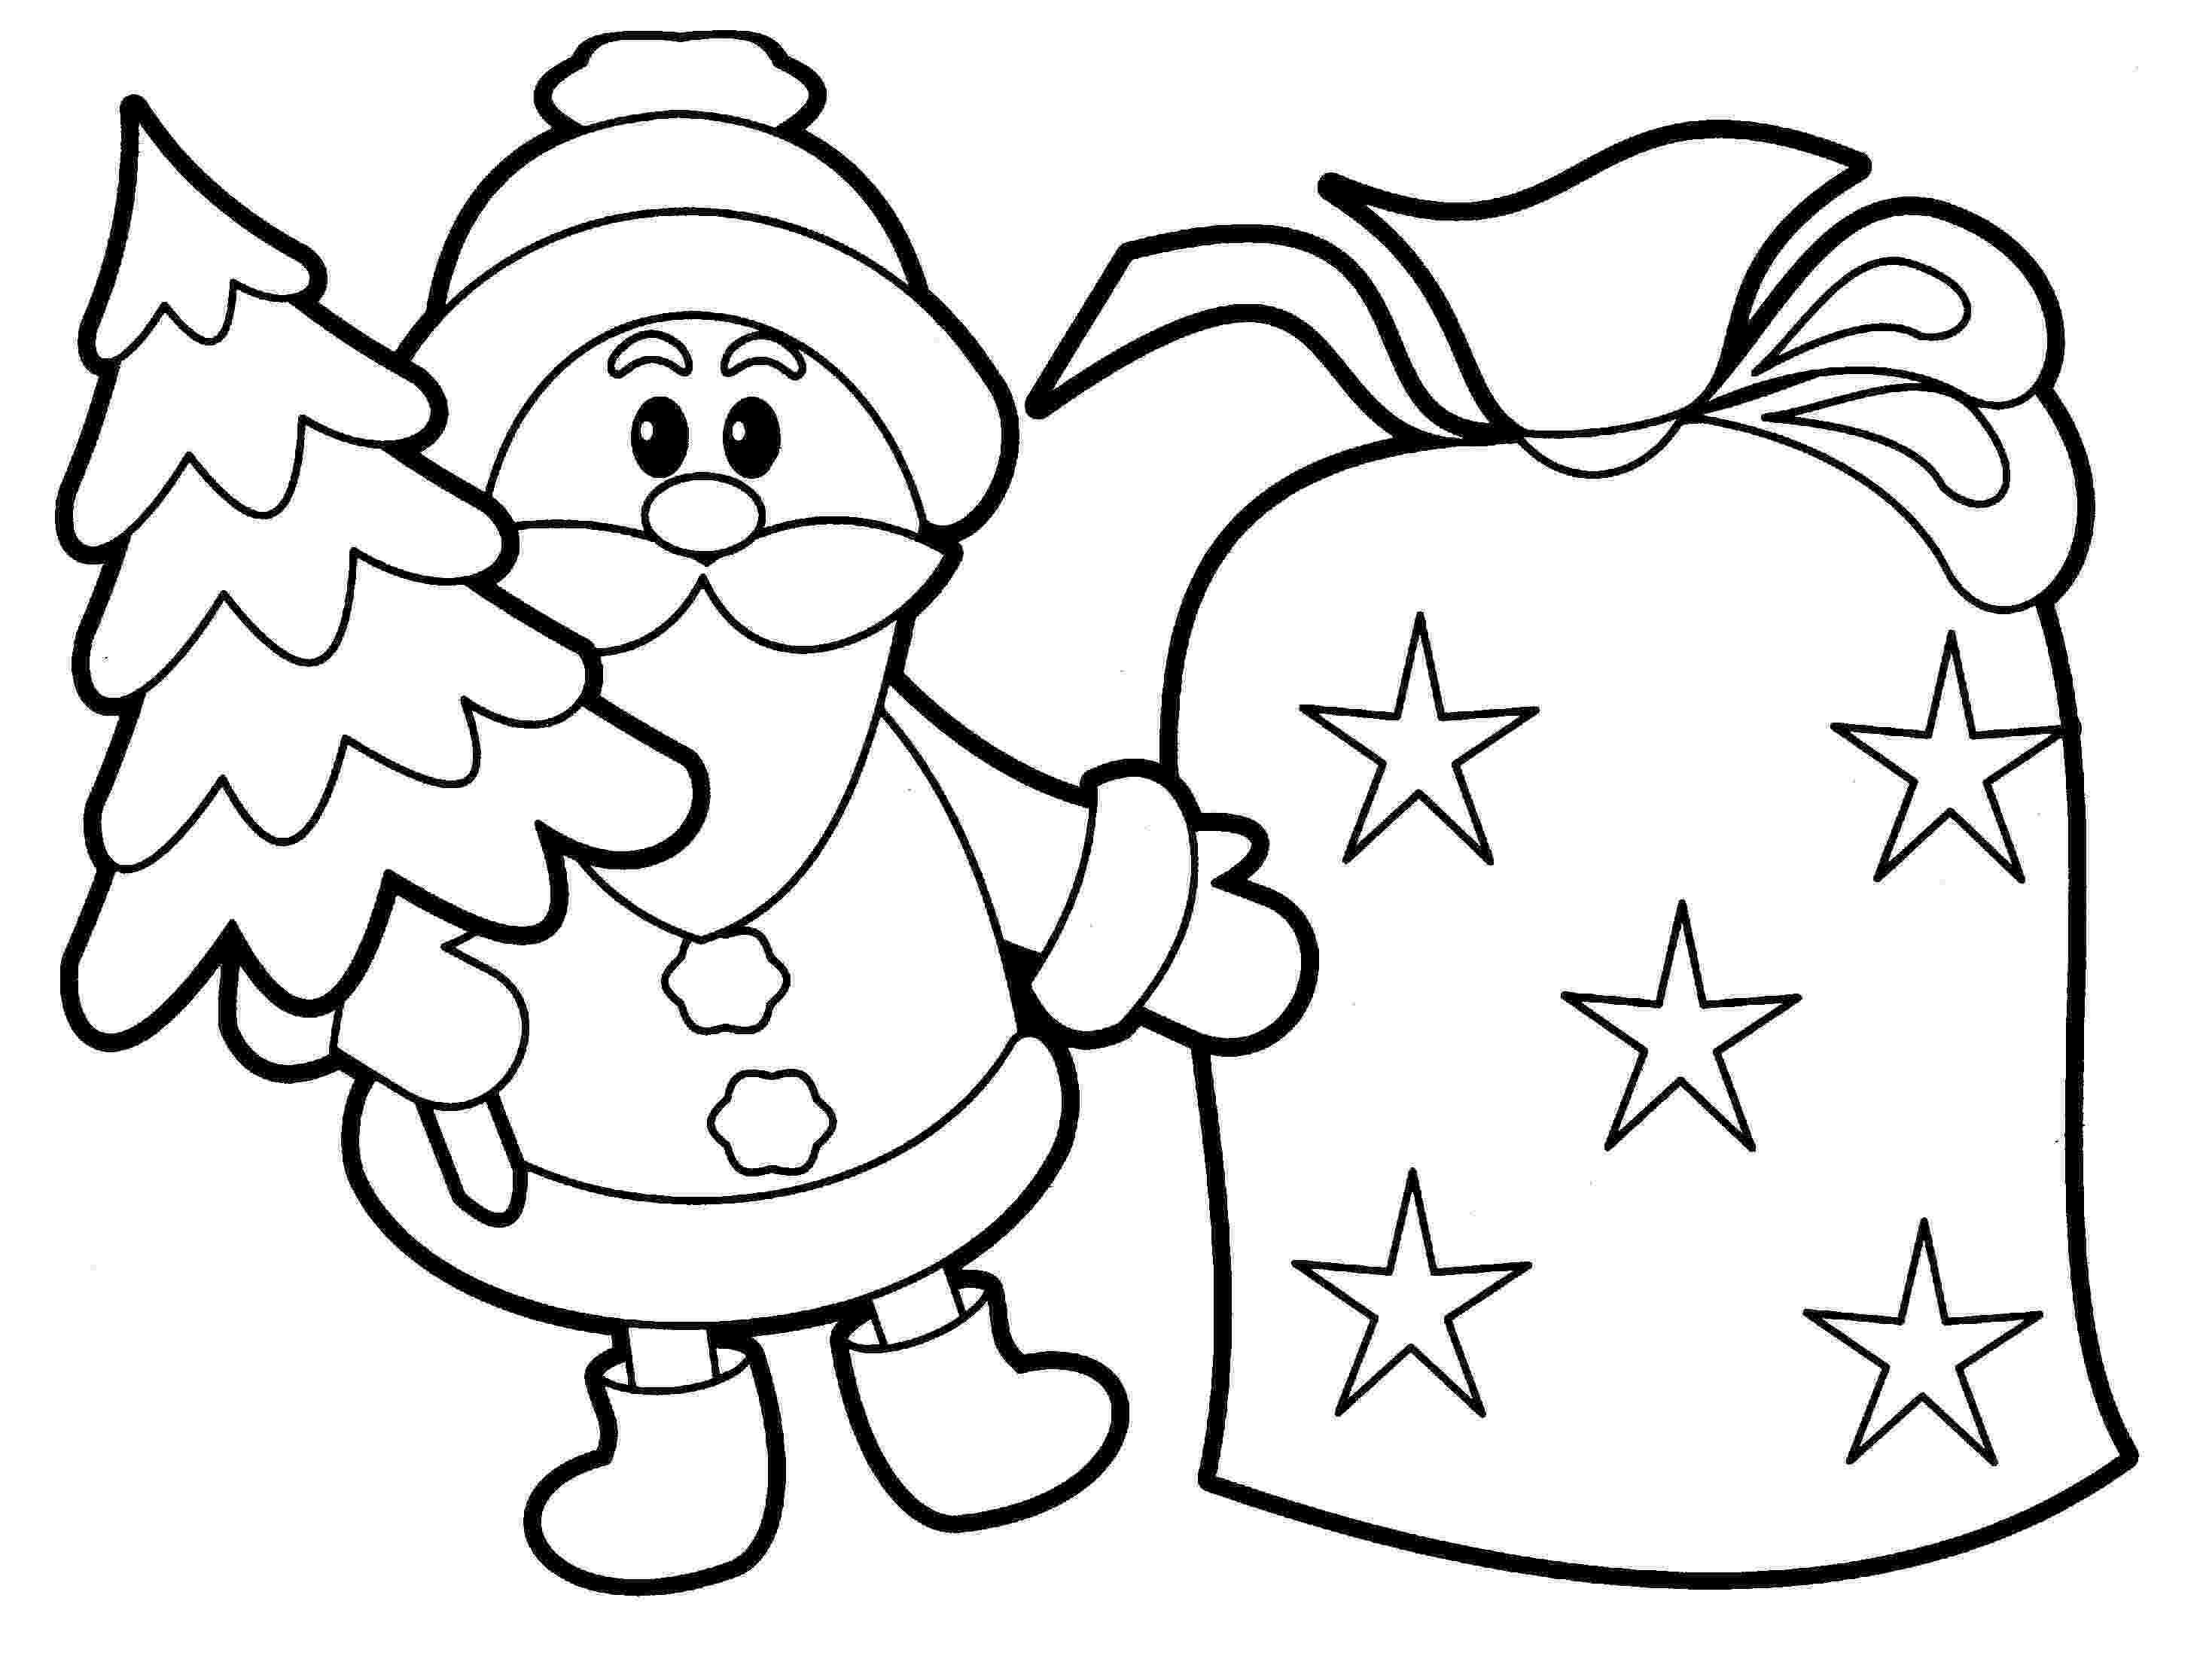 free printable christmas coloring pages free christmas coloring pages printable wallpapers9 printable free coloring pages christmas